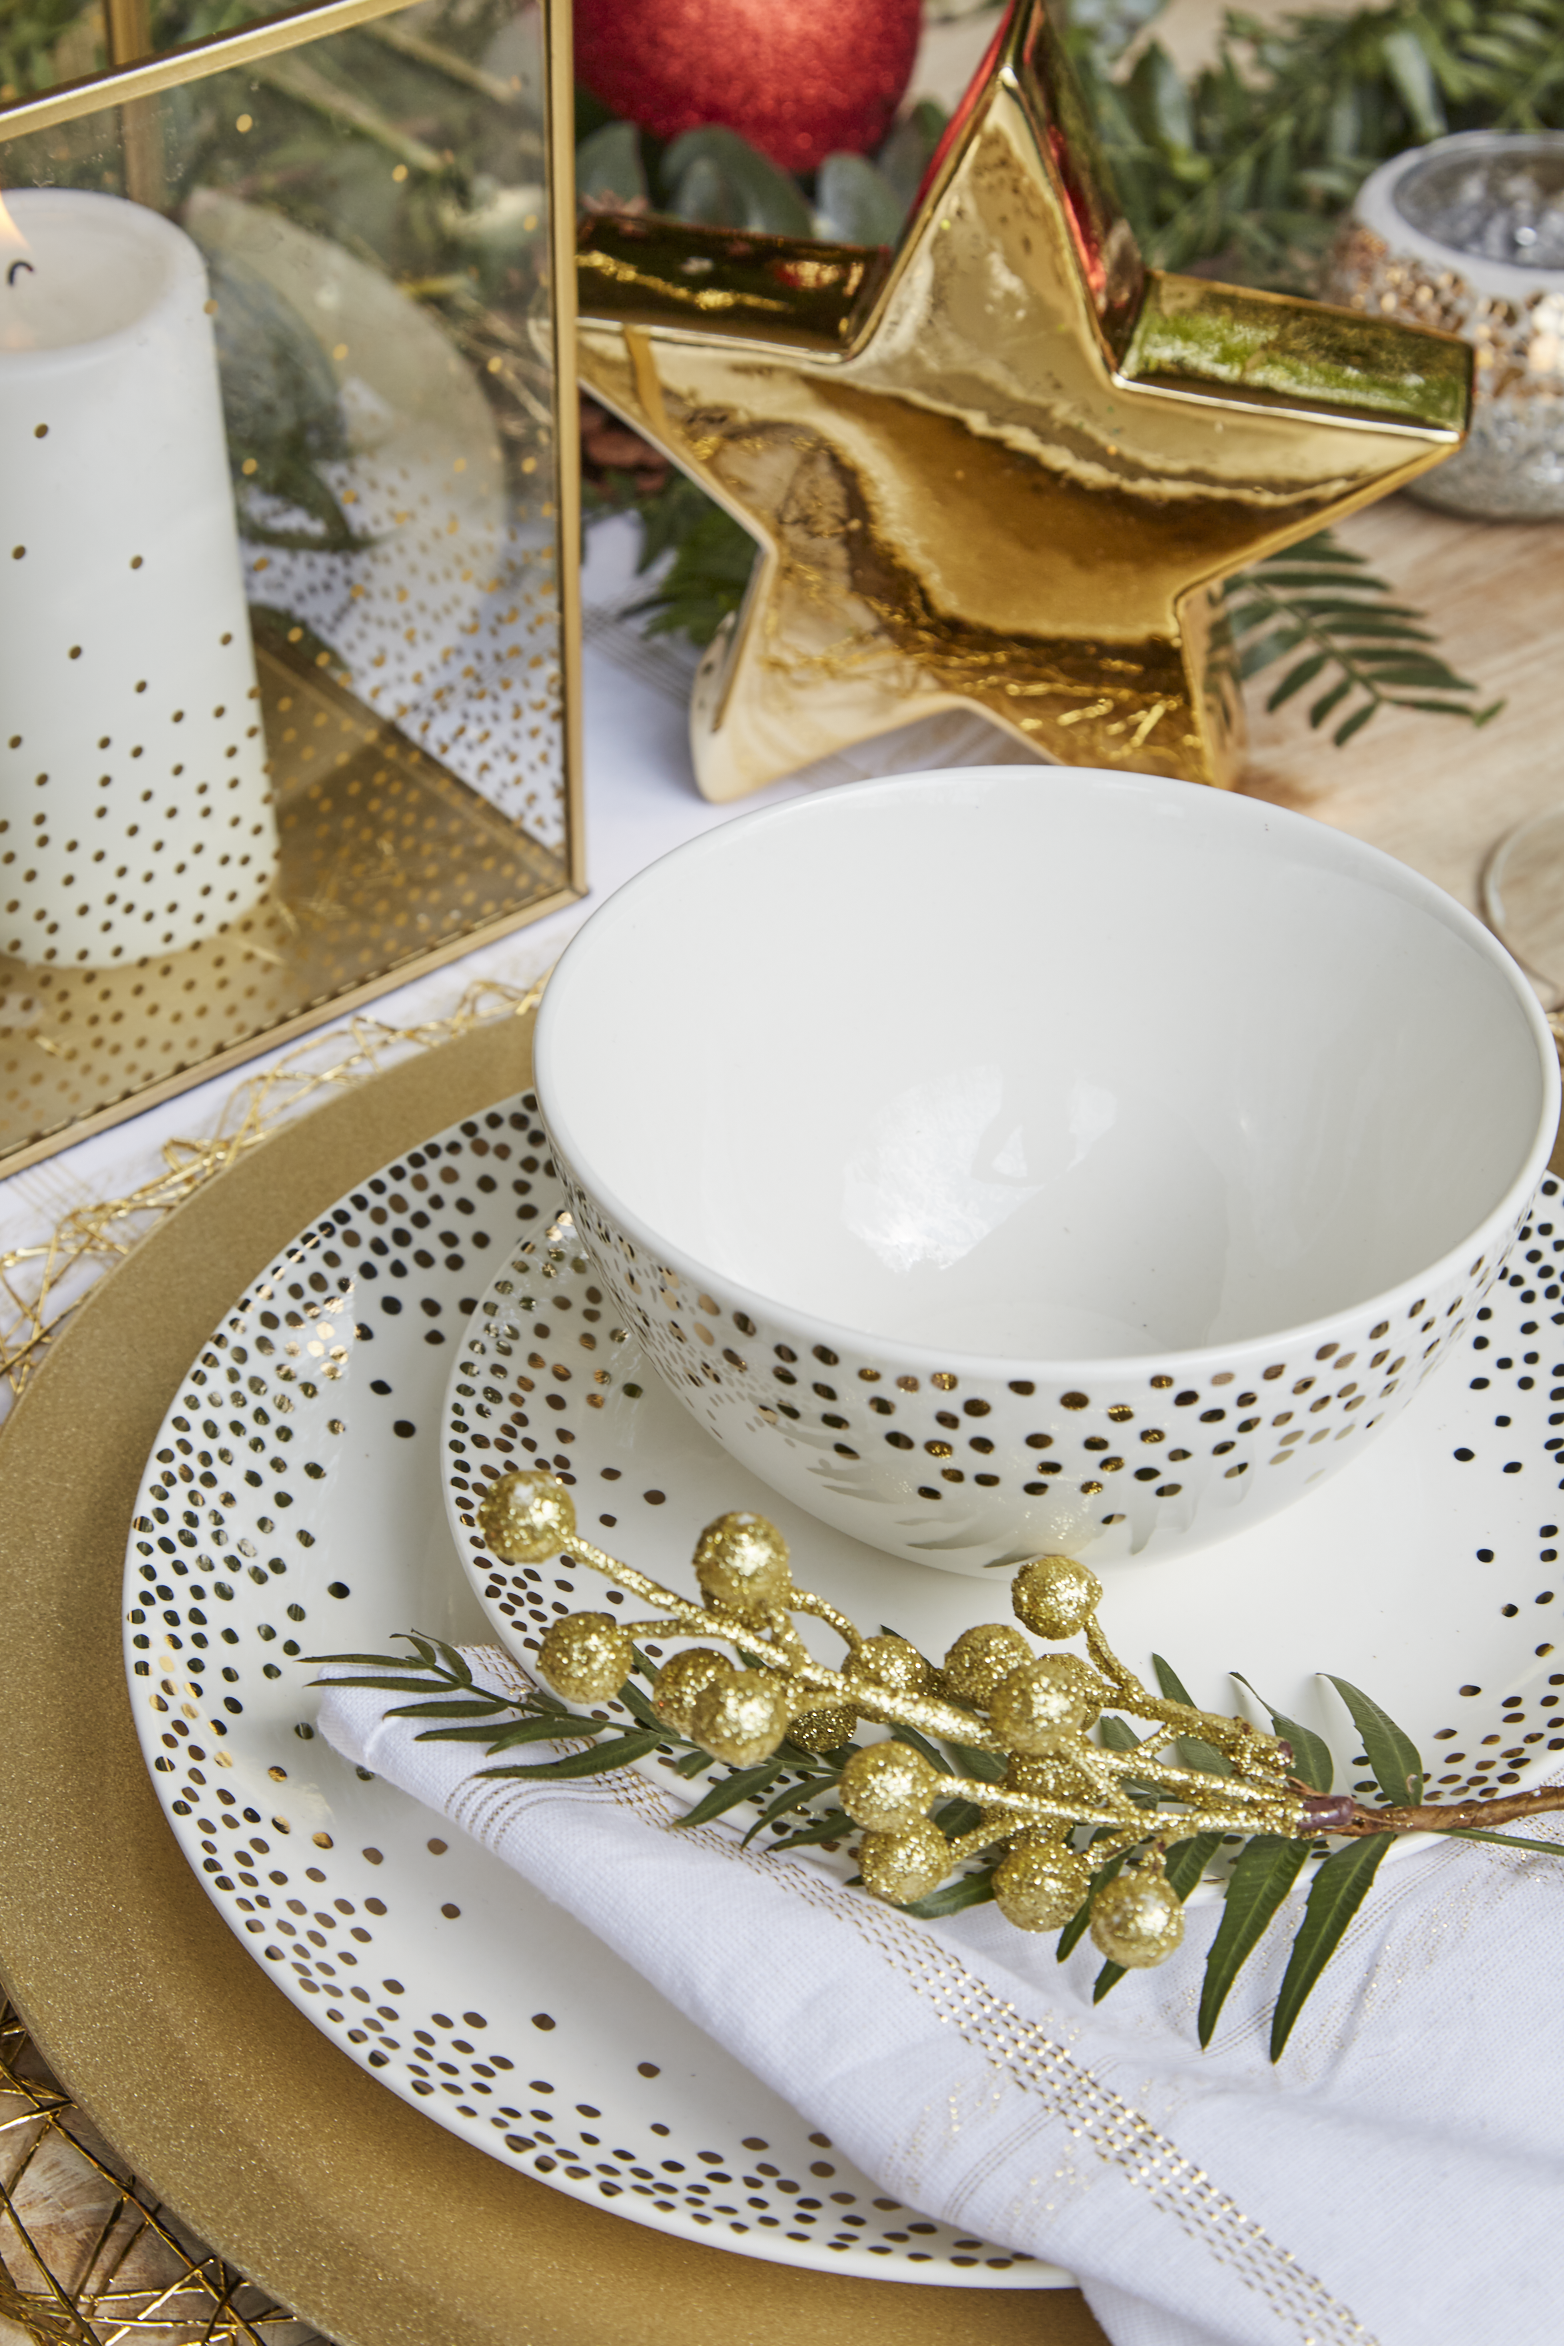 Pin By Better Homes And Gardens On Festive Table Decor With Spotlight Christmas Tableware Christmas Table Setting Centerpieces Christmas Table Decorations